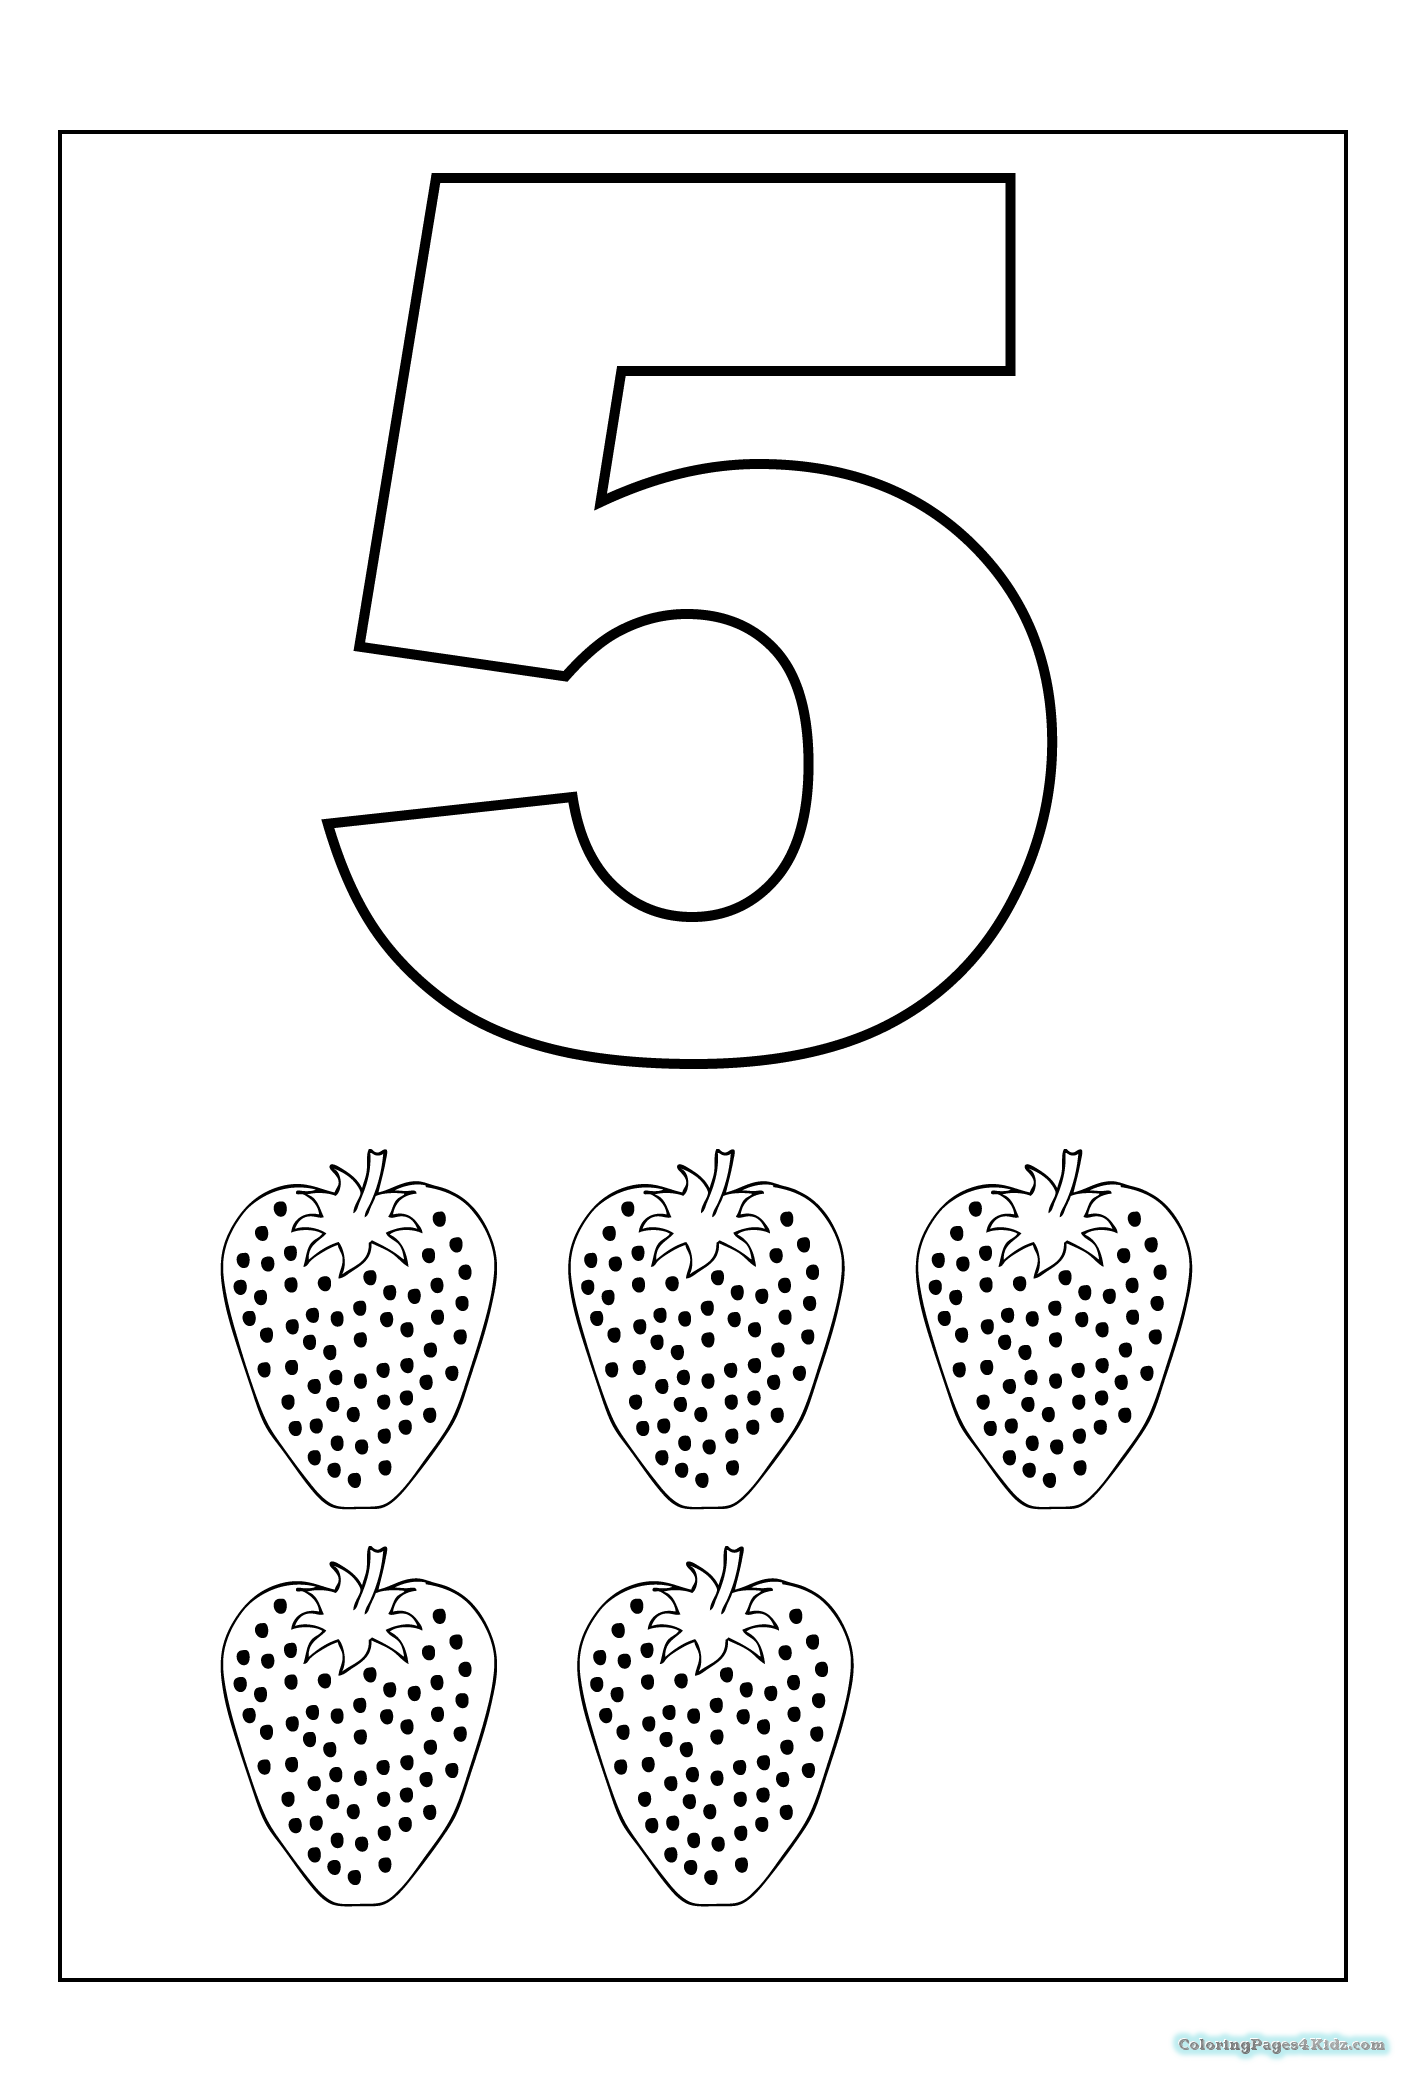 number 5 coloring sheet number 5 coloring page coloring pages for kids sheet coloring number 5